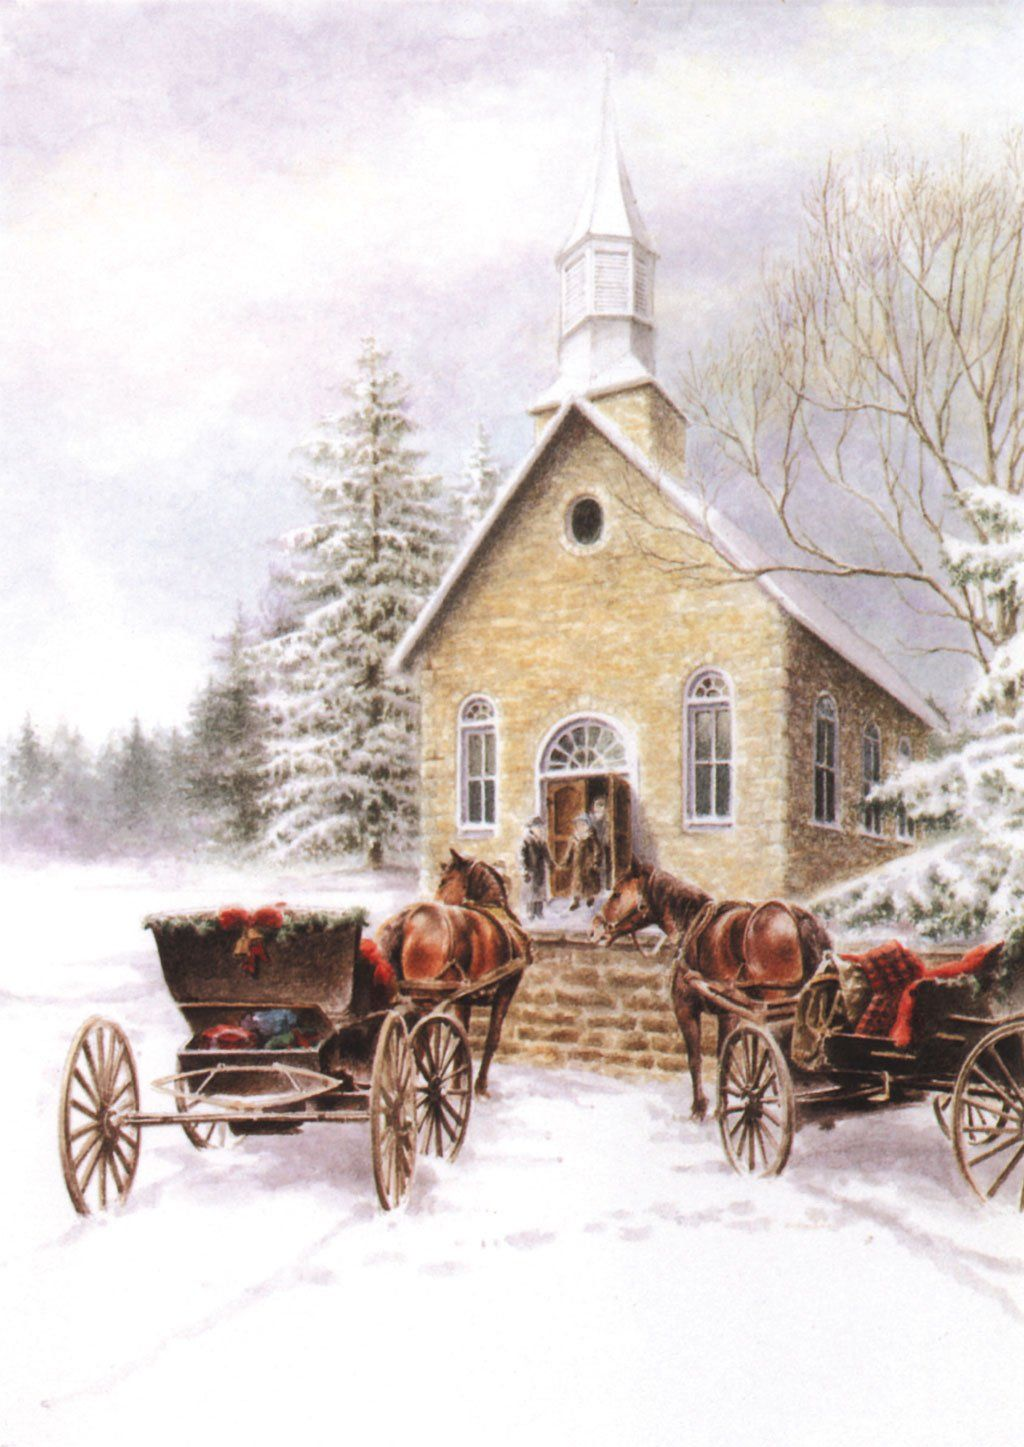 'Small Town Christmas' Merry Christmas Card - Northern Cards